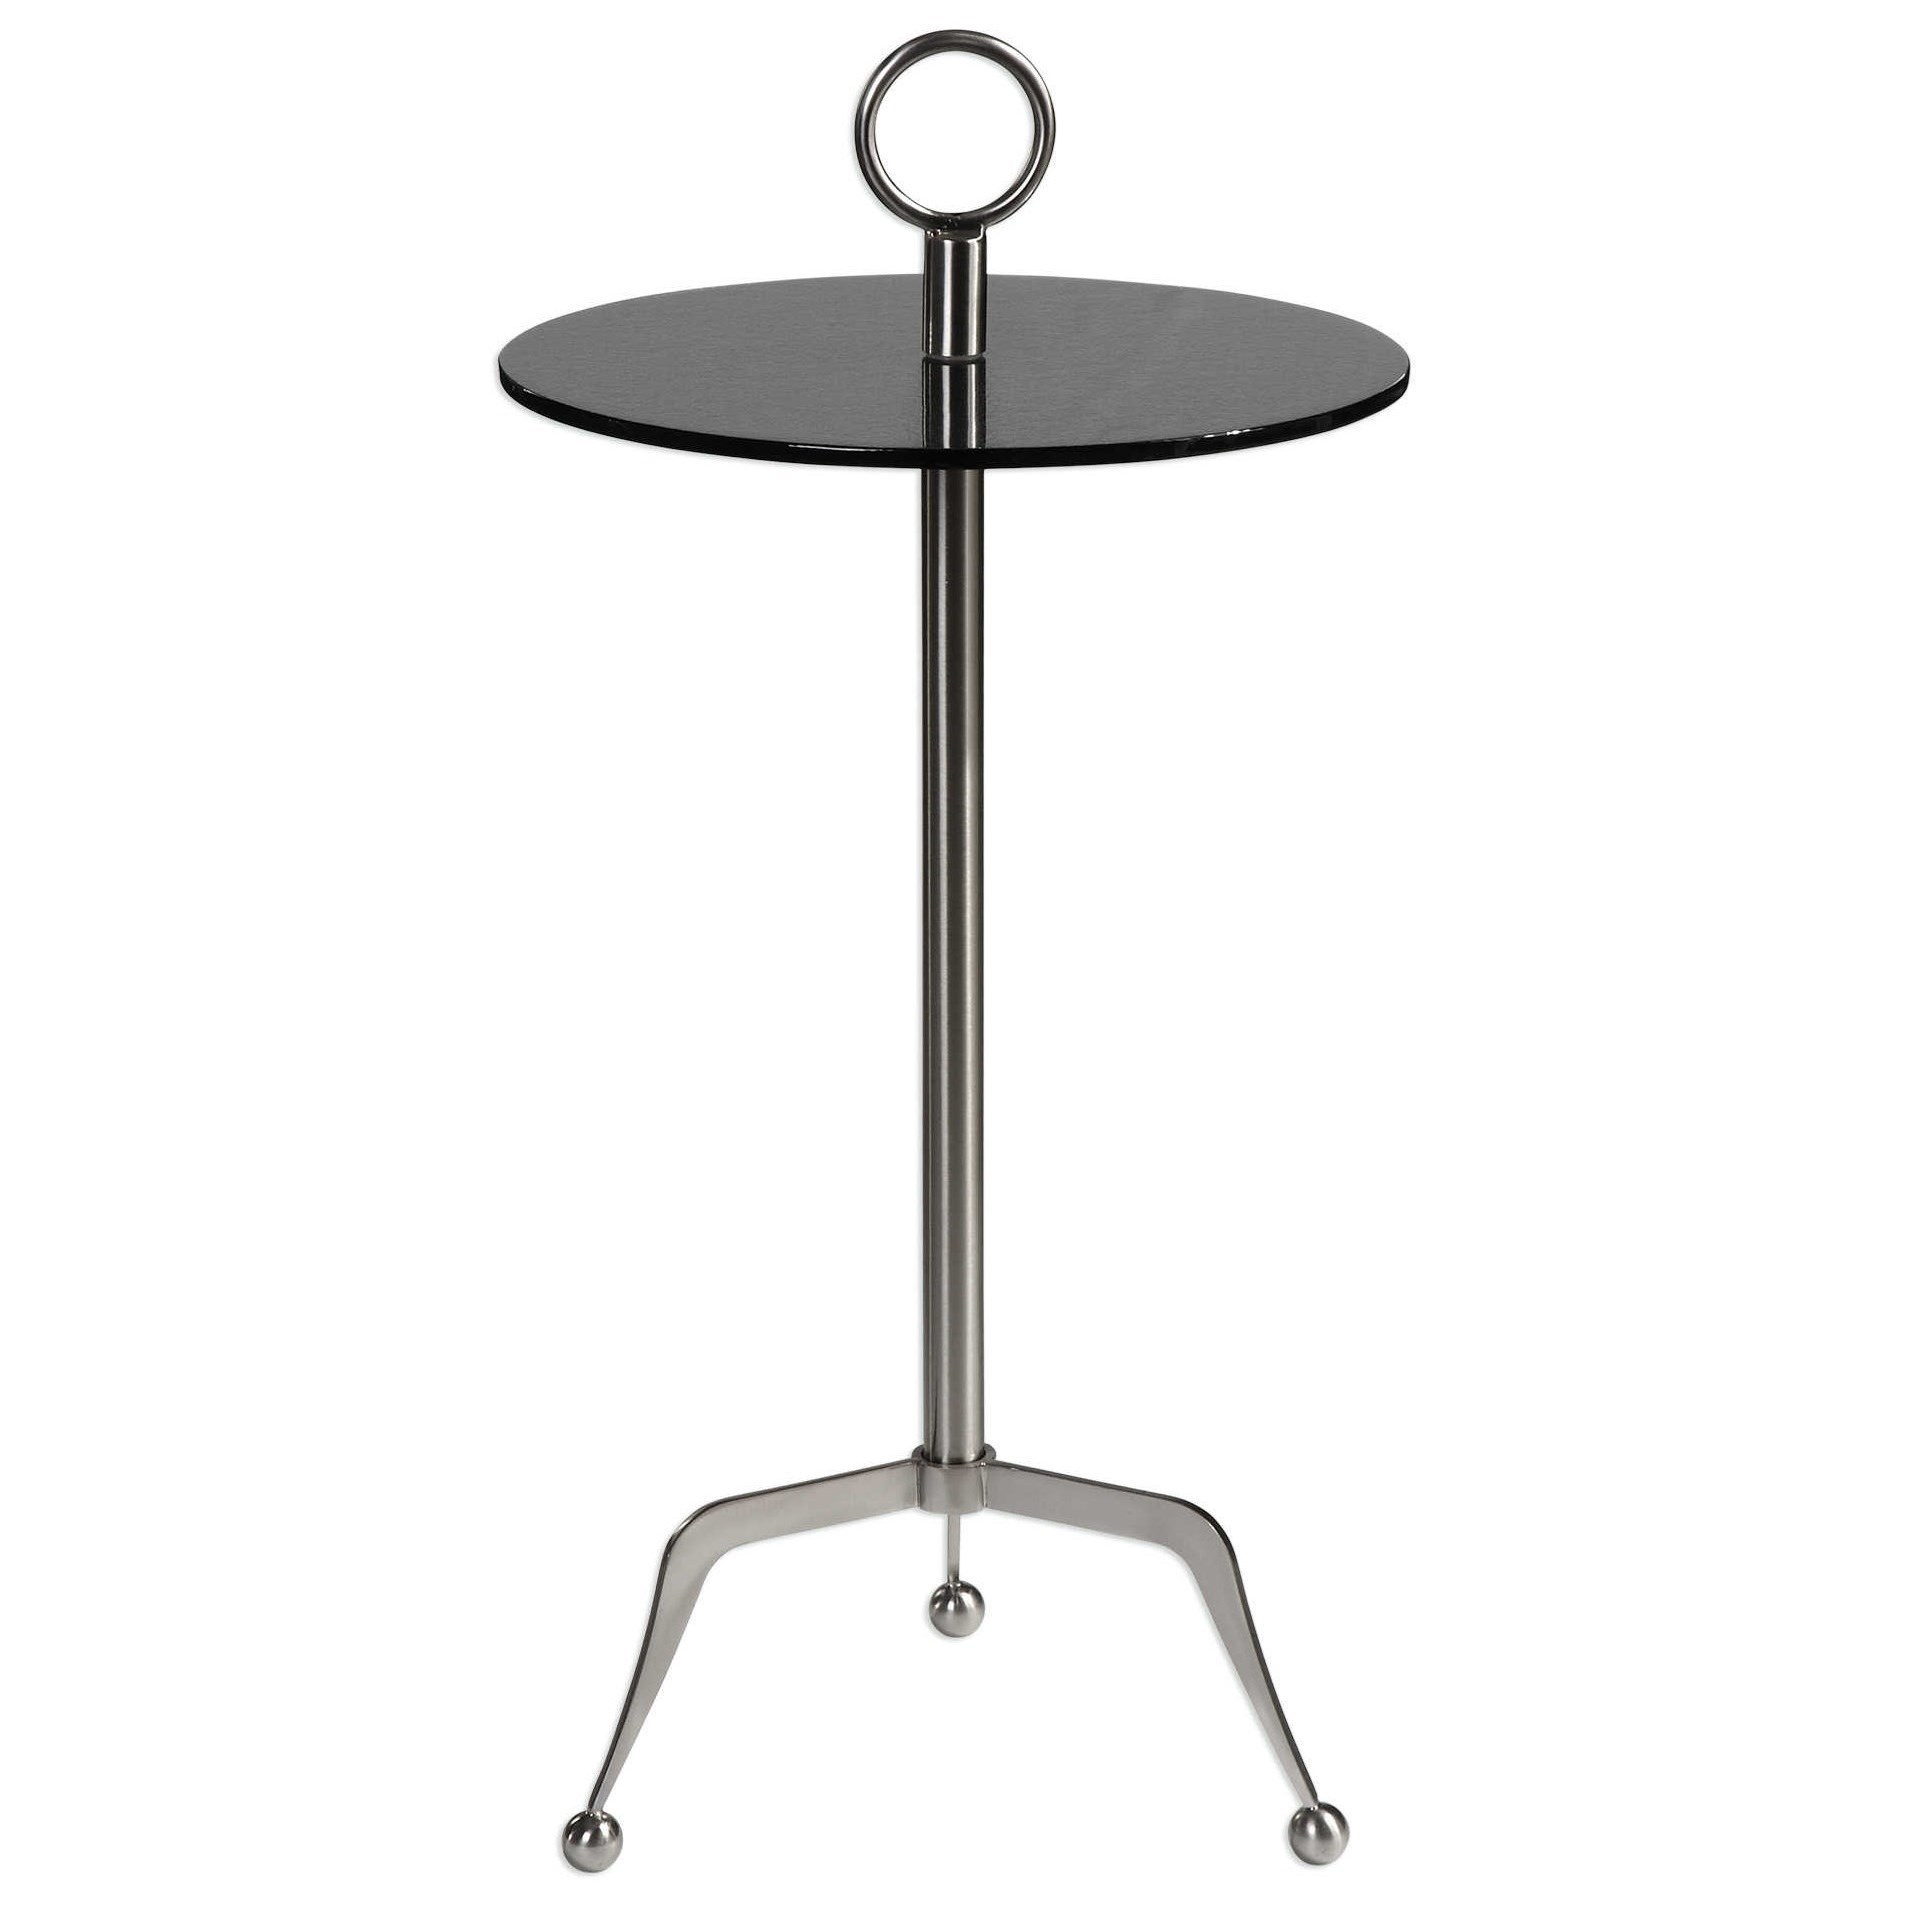 uttermost accent furniture 24751 astro stainless steel accent table   becker furniture world   end tables uttermost accent furniture 24751 astro stainless steel accent      rh   beckerfurnitureworld